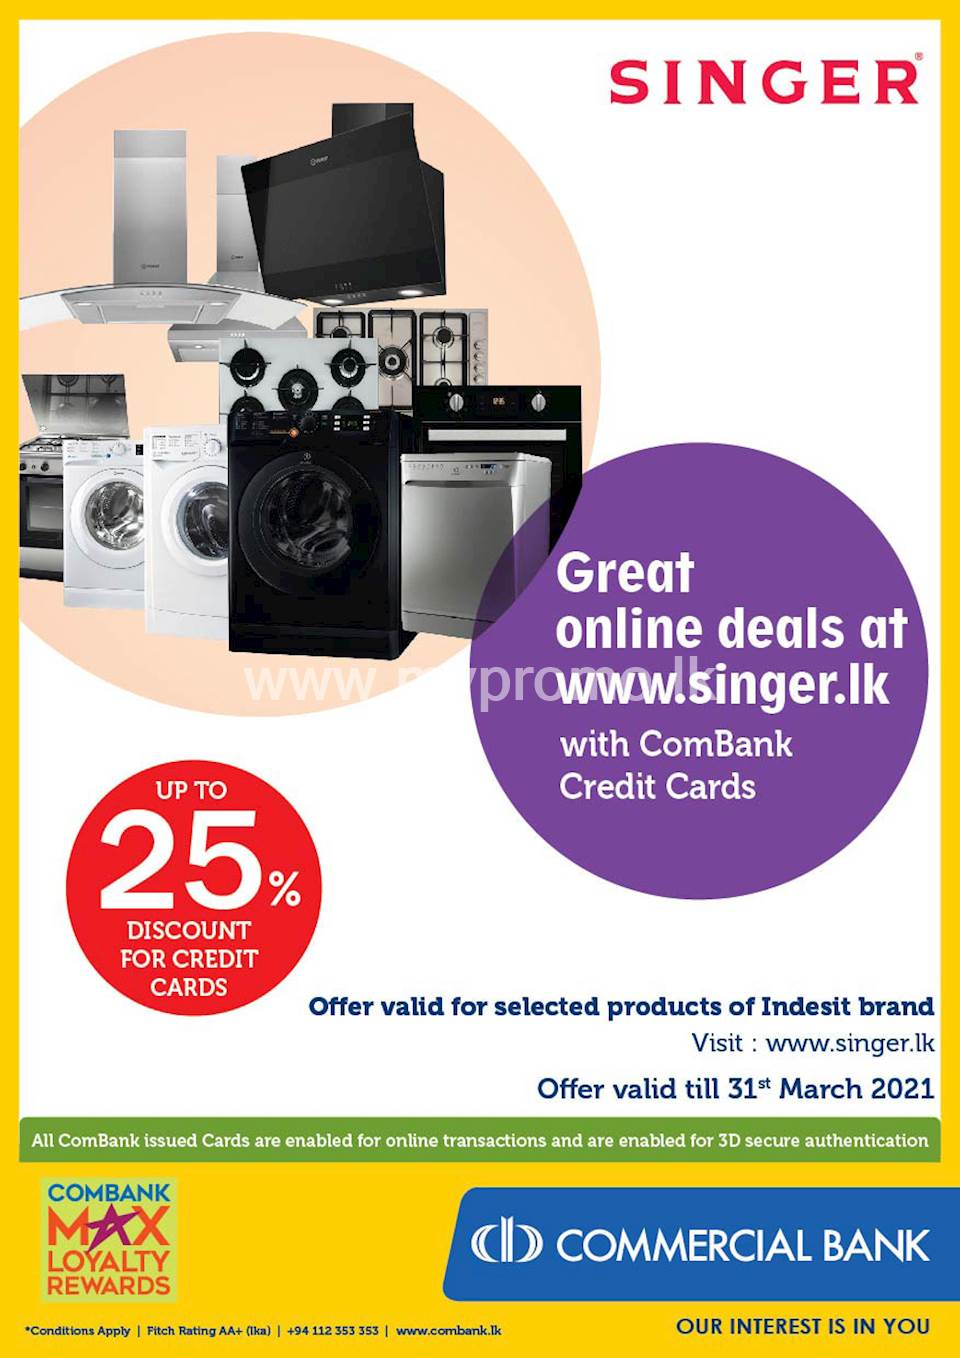 Great online deals at www.singer.lk with ComBank Credit Cards